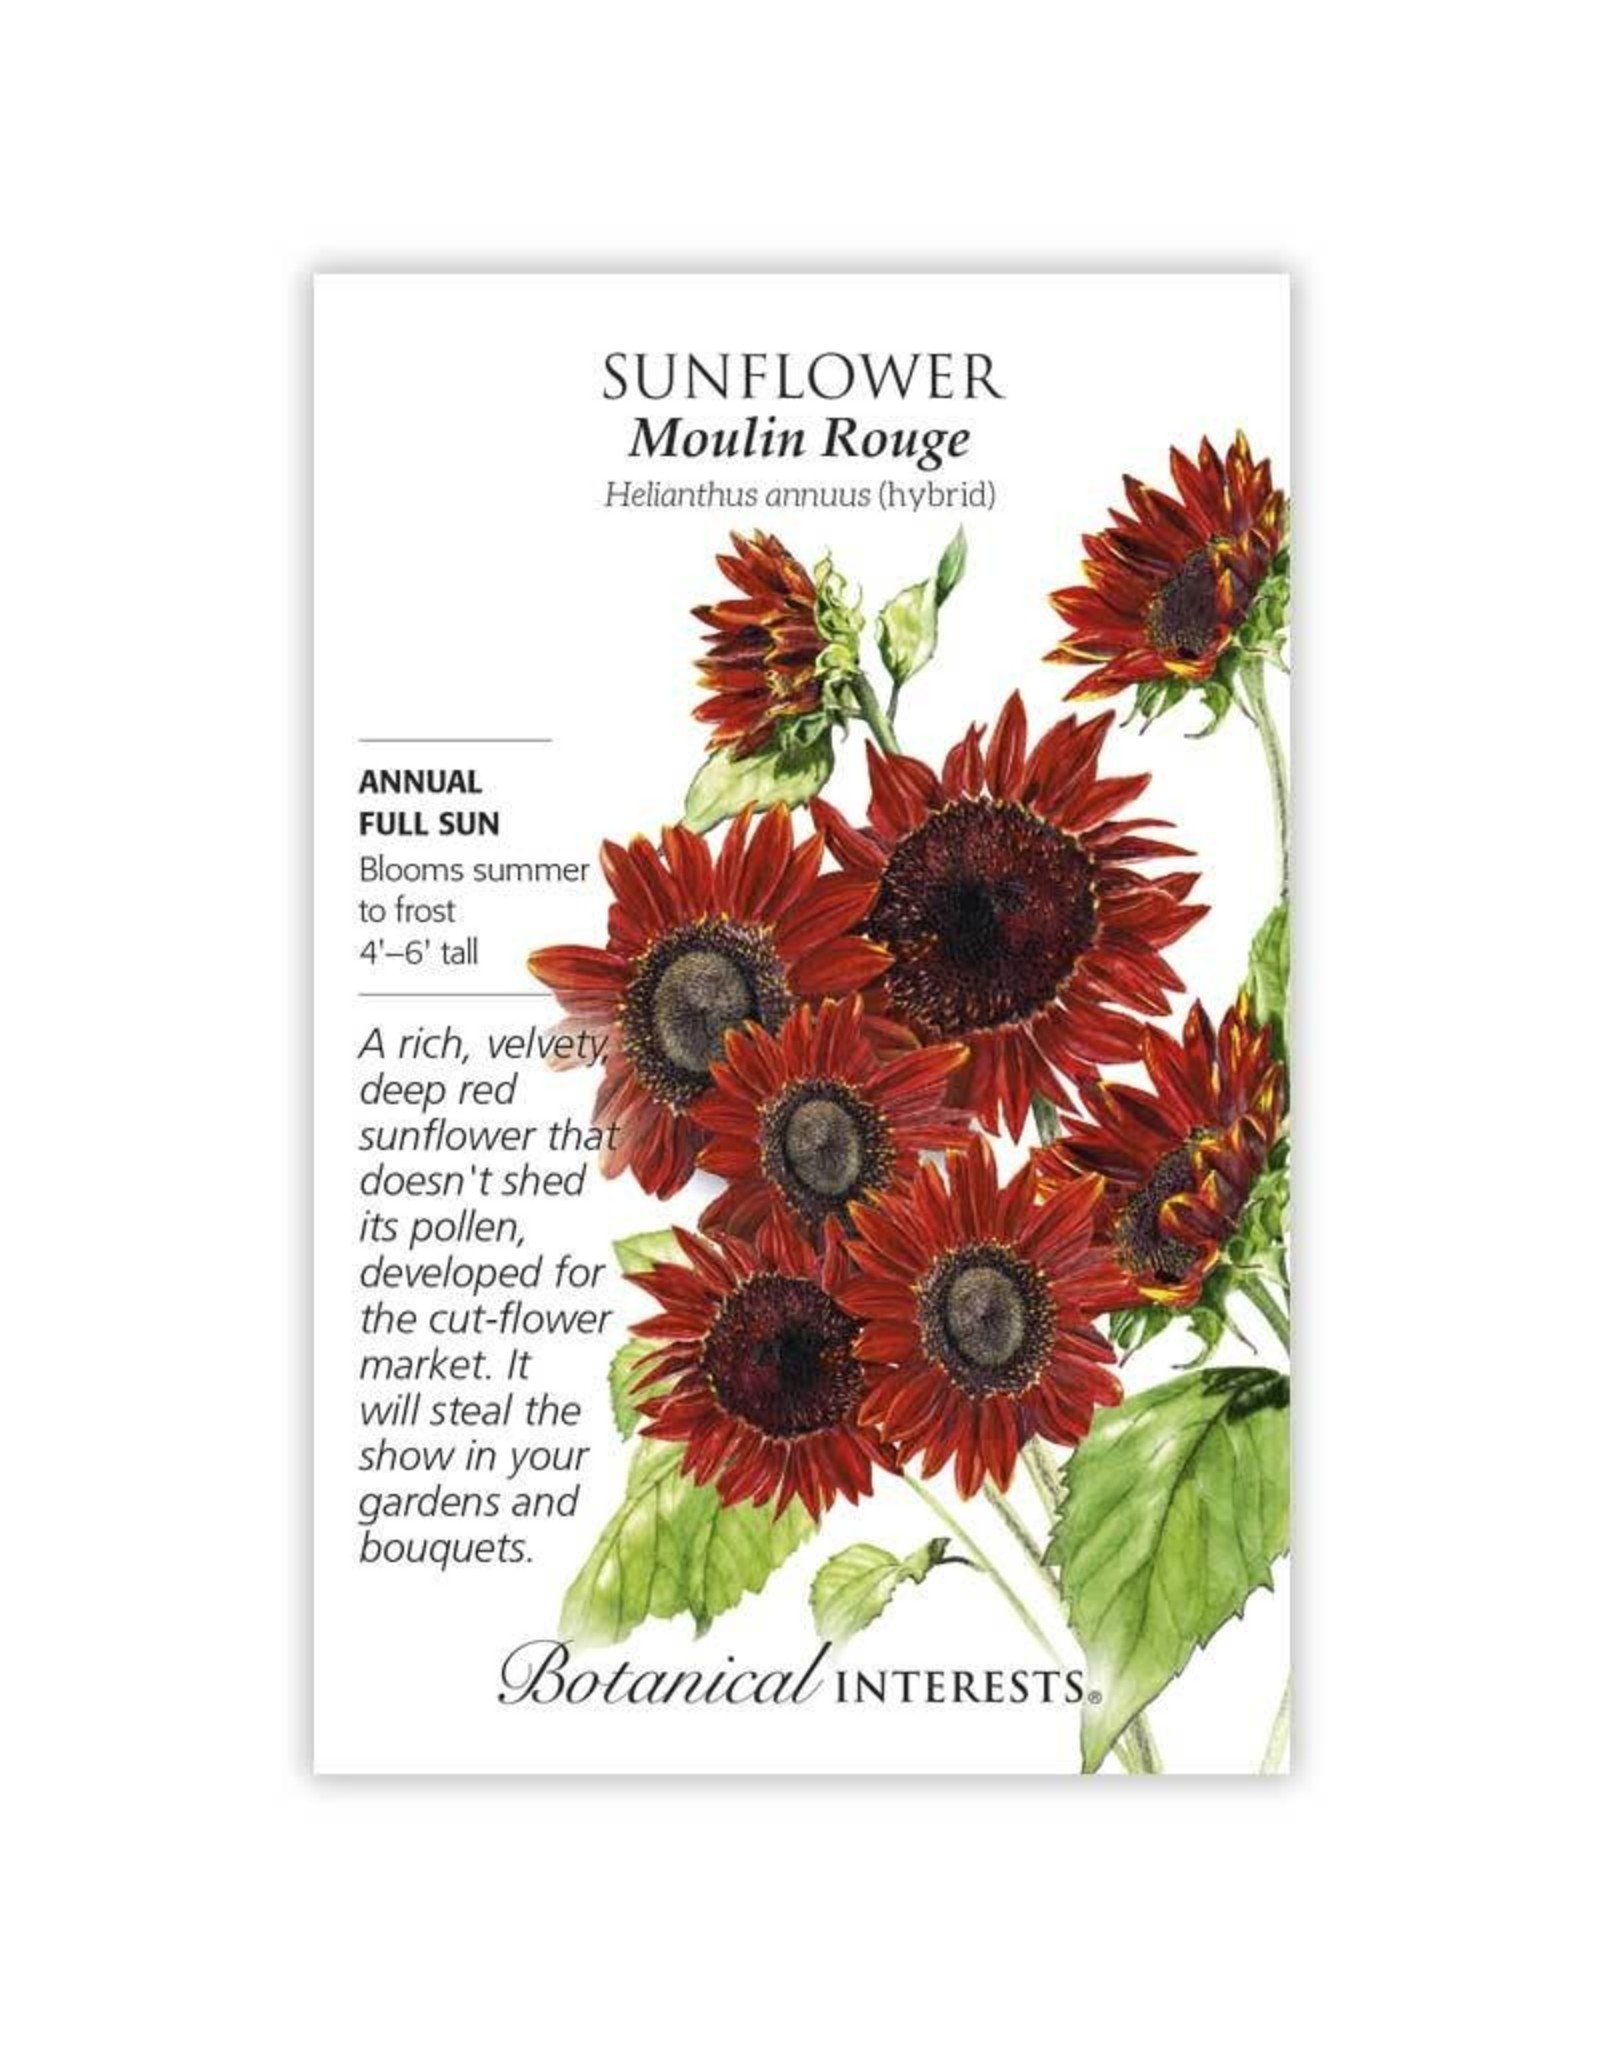 Seeds - Sunflower Moulin Rouge Hybrid